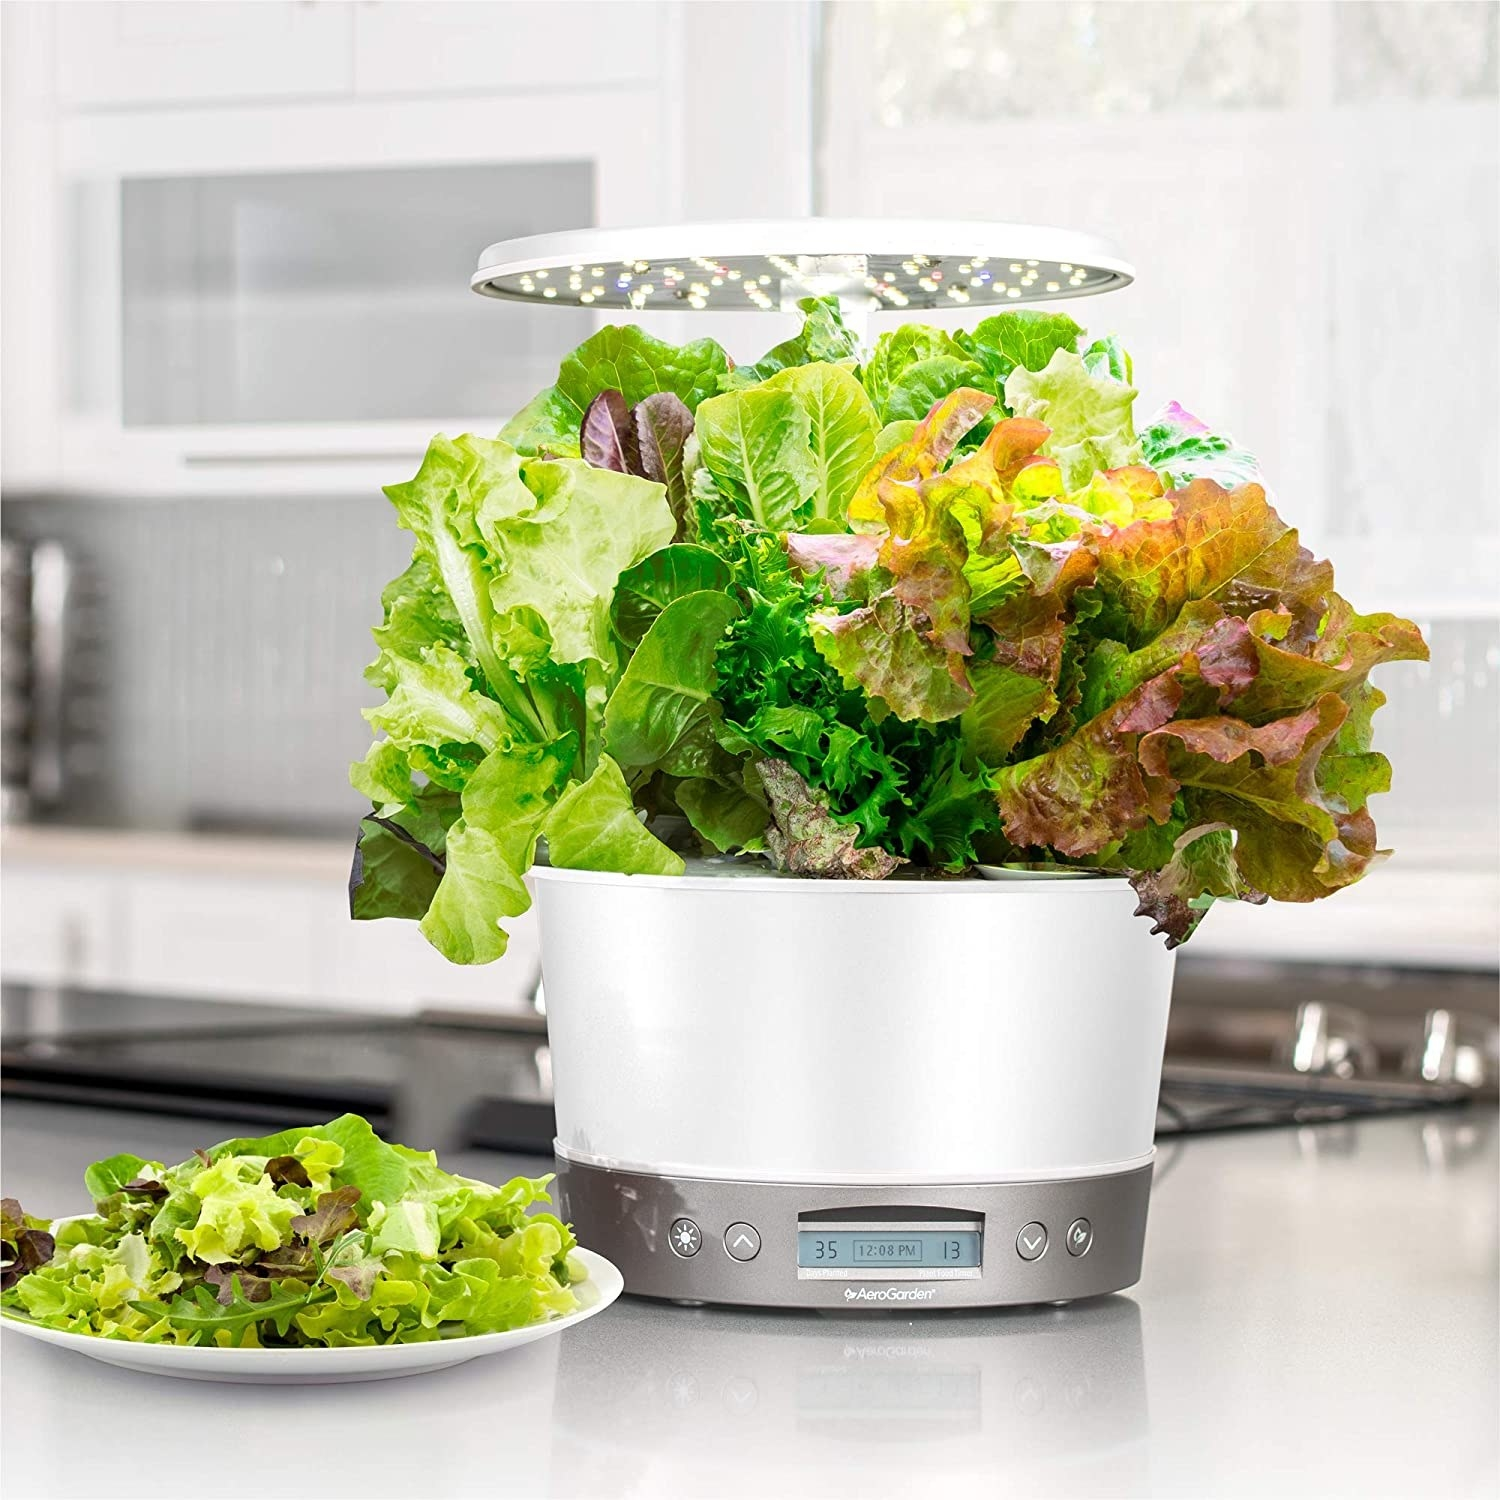 The garden on a counter filled with lettuce